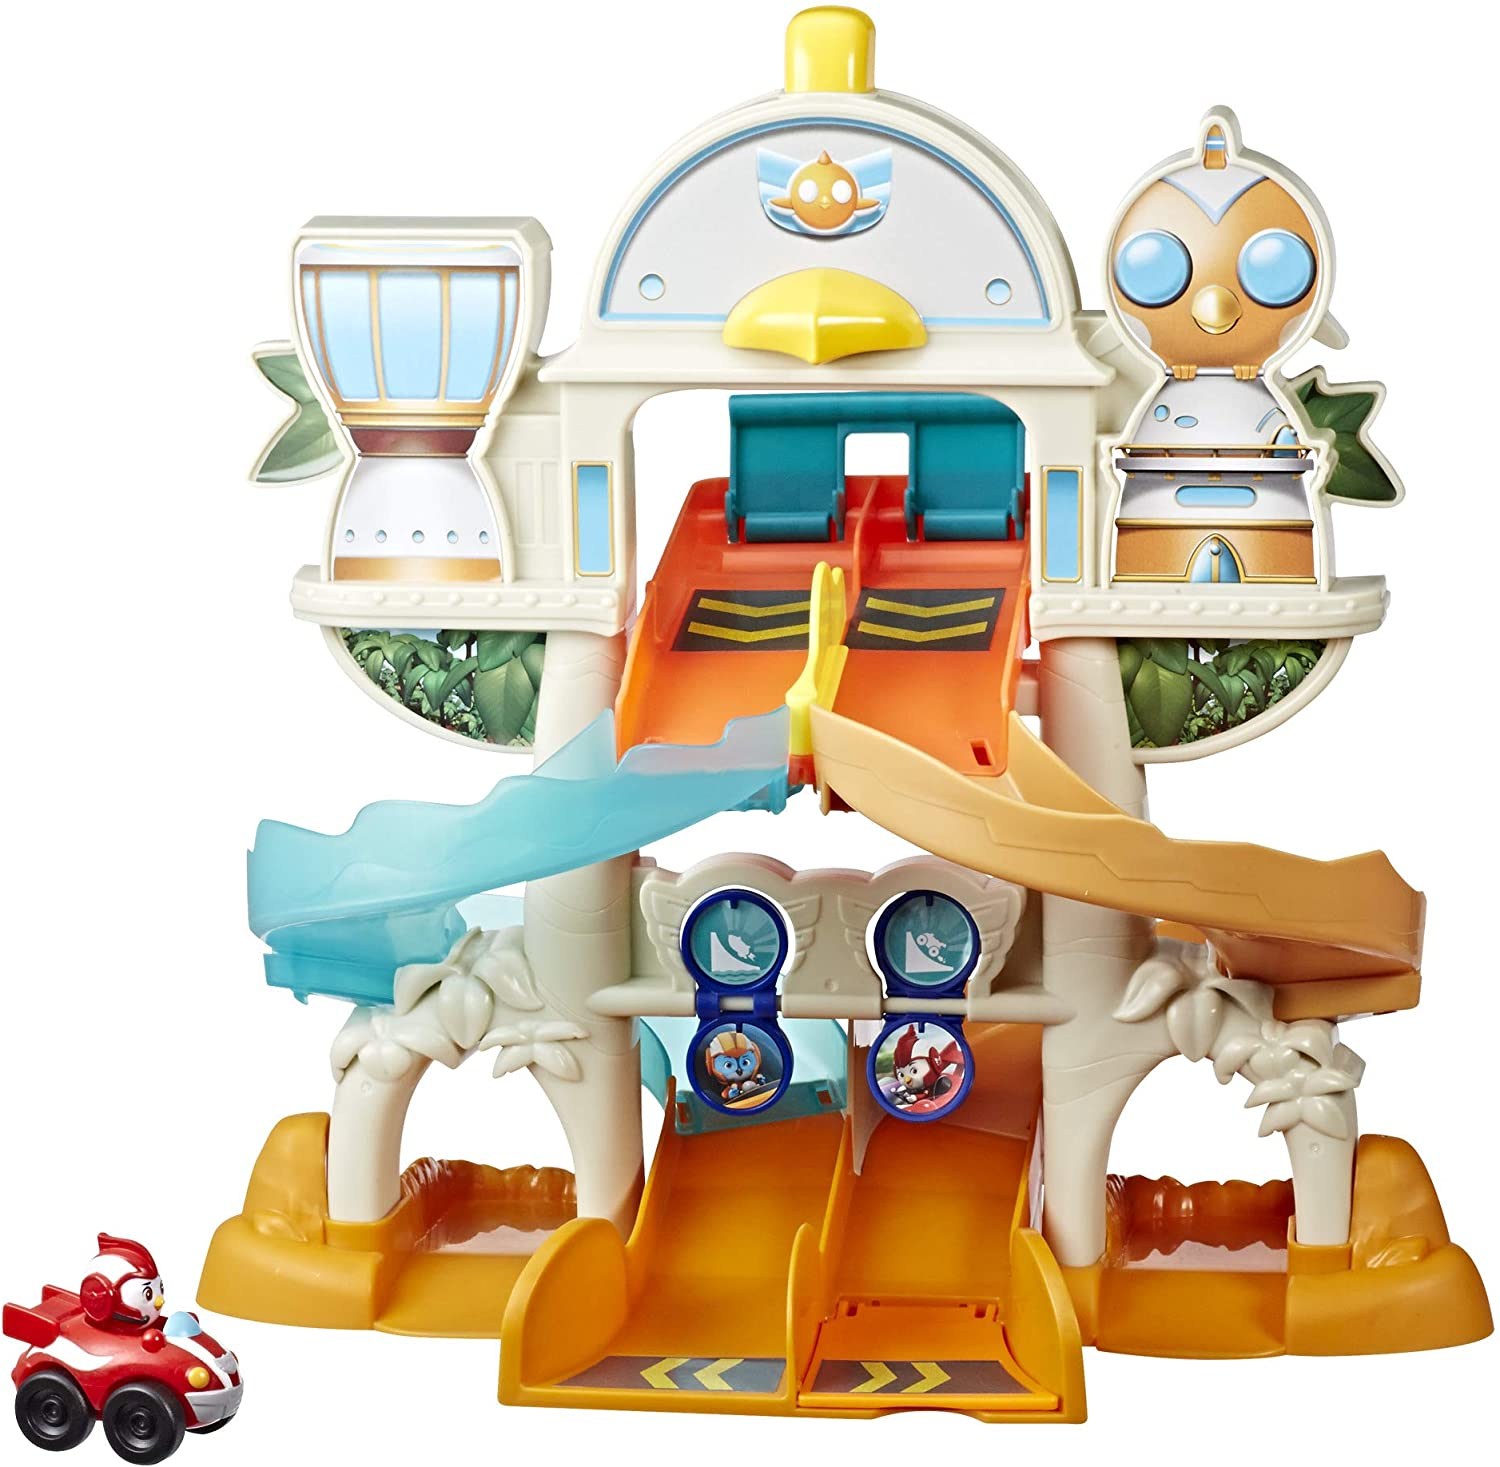 Top Wing Mission Ready Track Playset, Includes Ramp Jump & Double Vehicle Launcher Vehicles, Toy for Kids Ages 3 to 5, Model Number: E5277